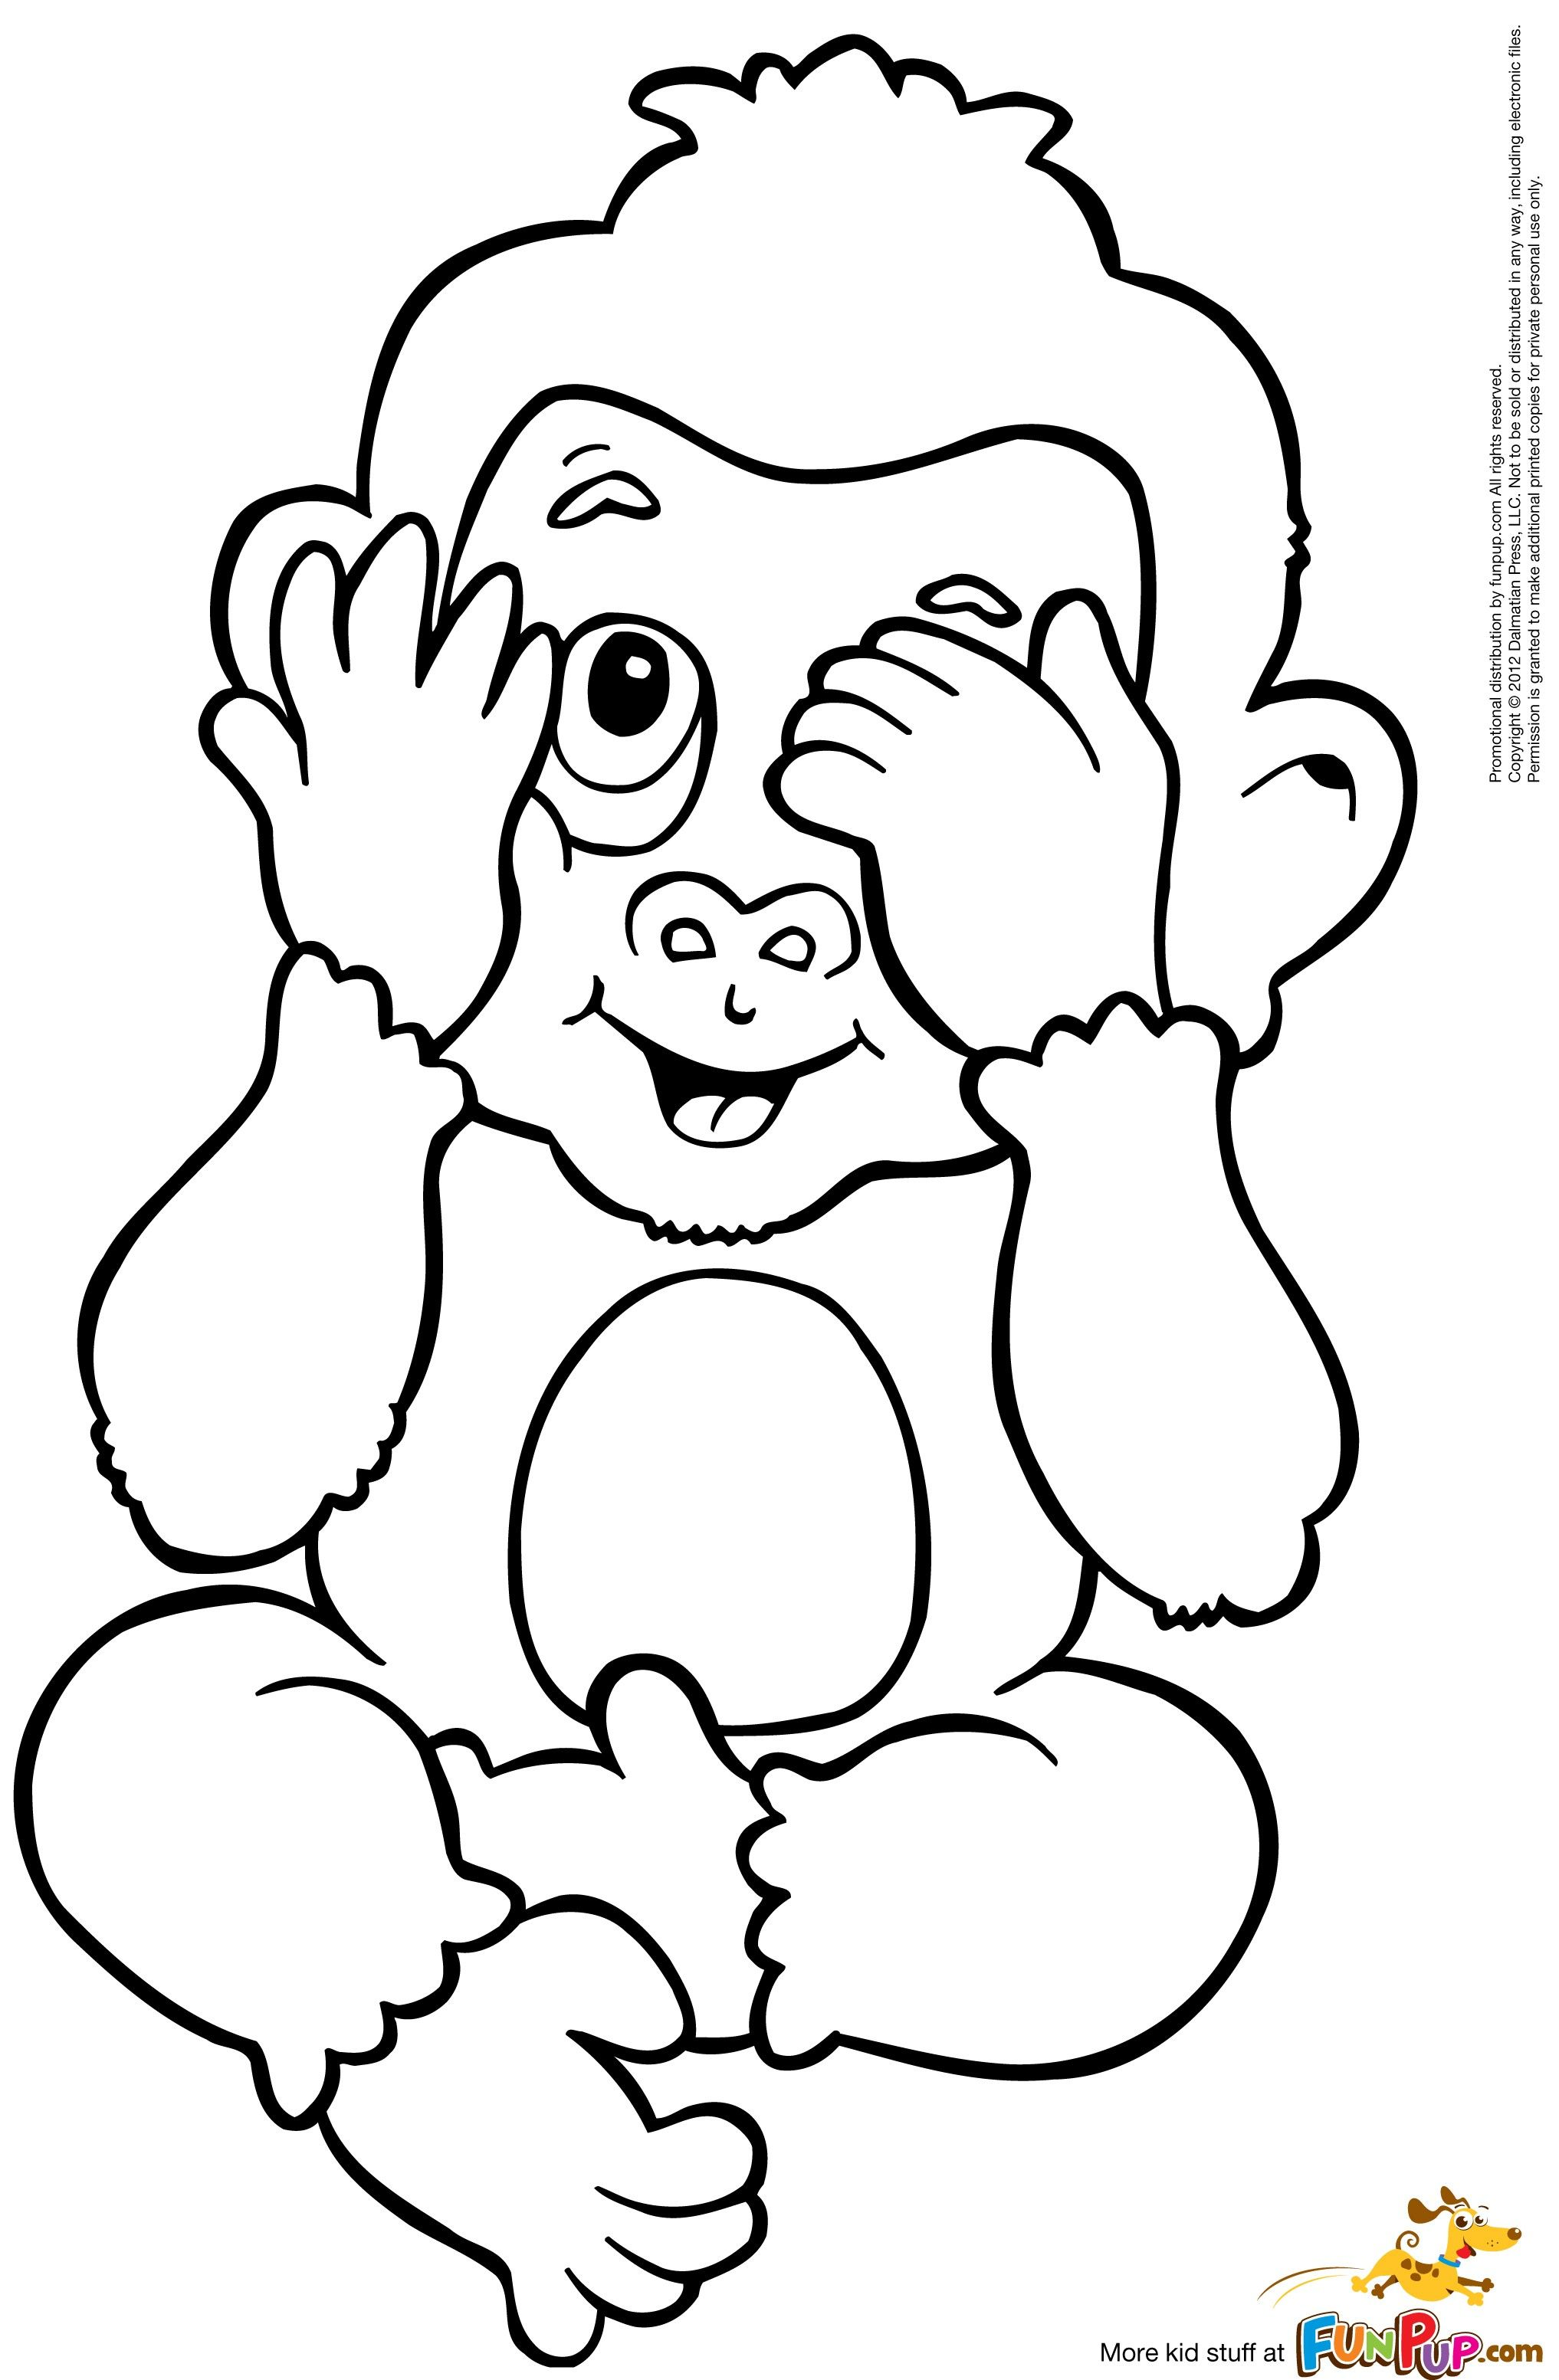 cute monkey coloring pages baby monkey coloring page cute